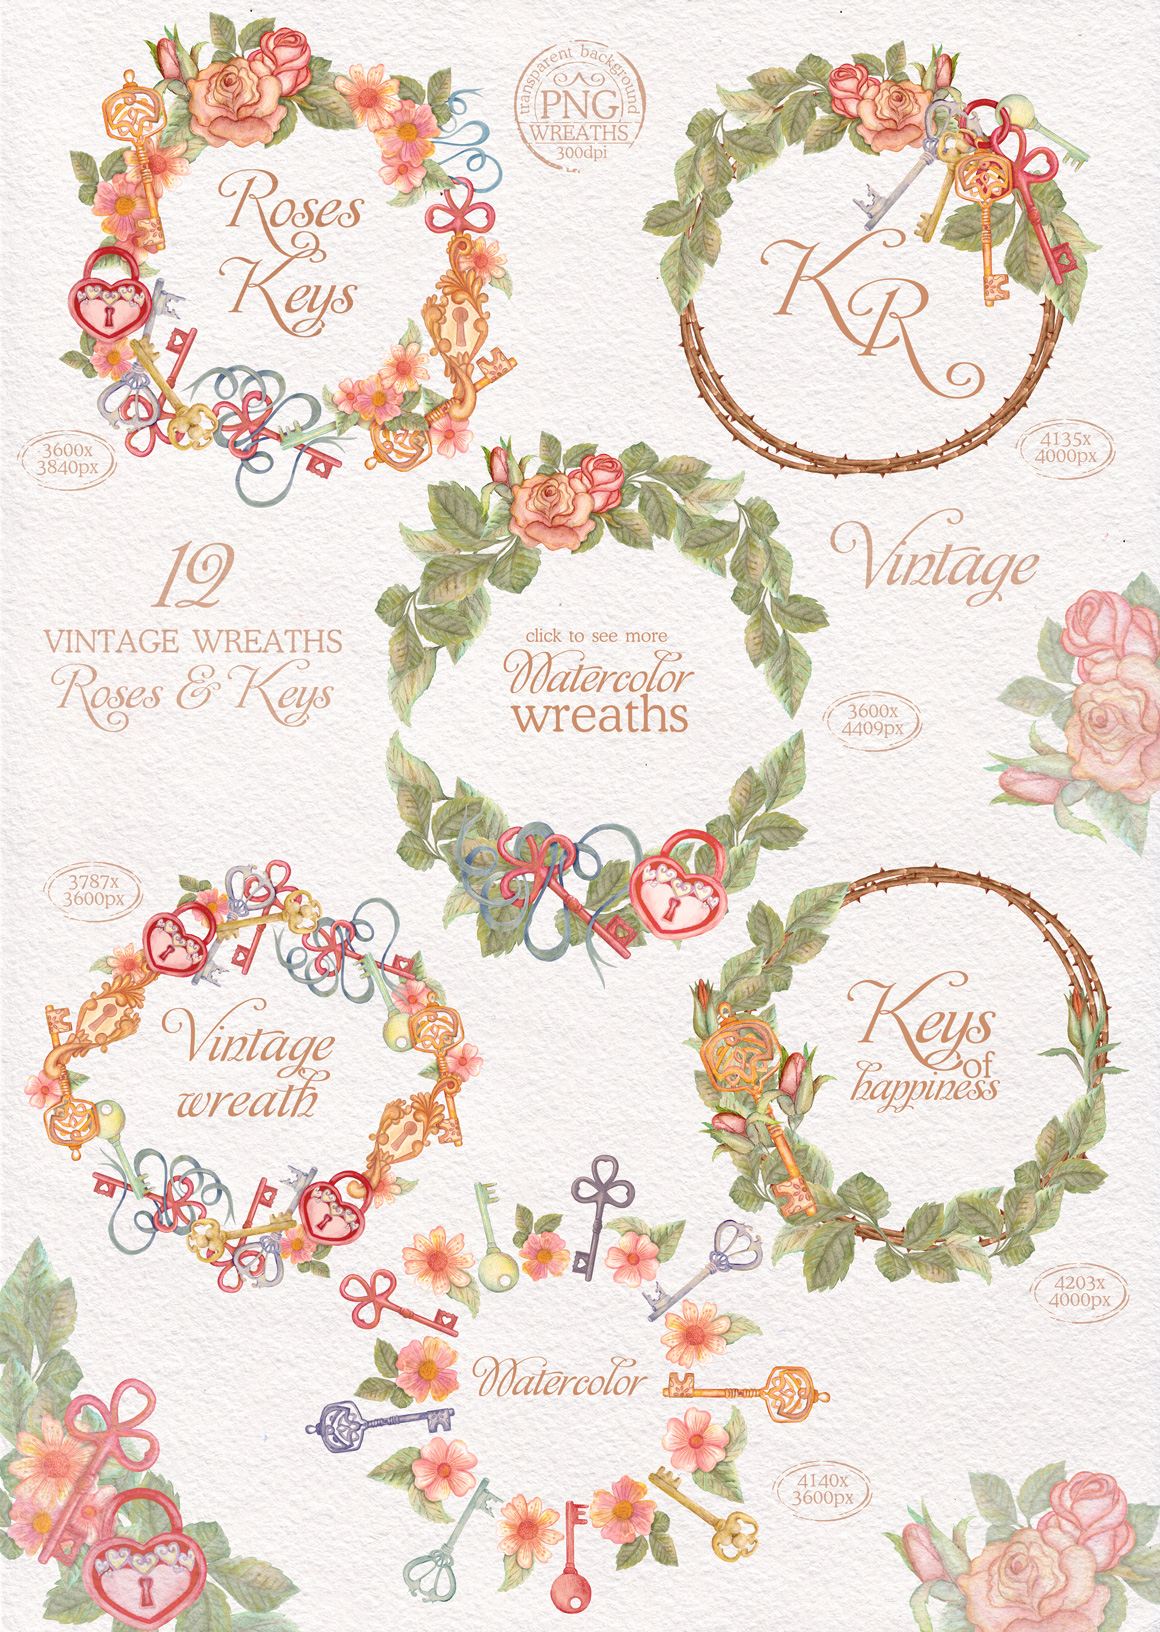 Watercolor wreaths set. Roses & keys example image 3